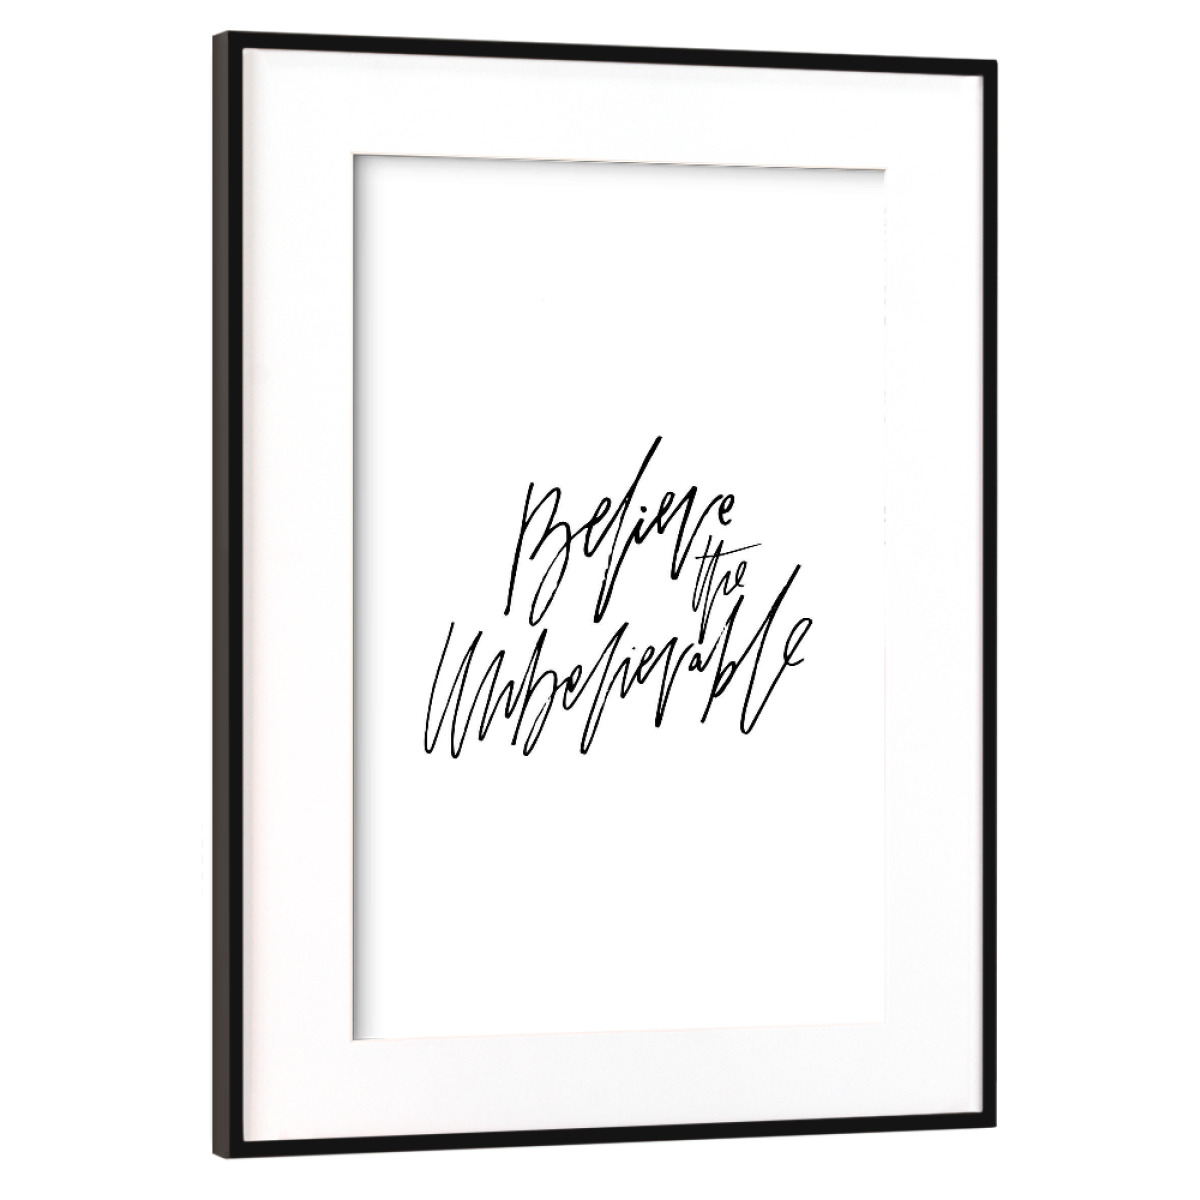 Purchase the Believe The Unbelievable as a Frame at artboxONE